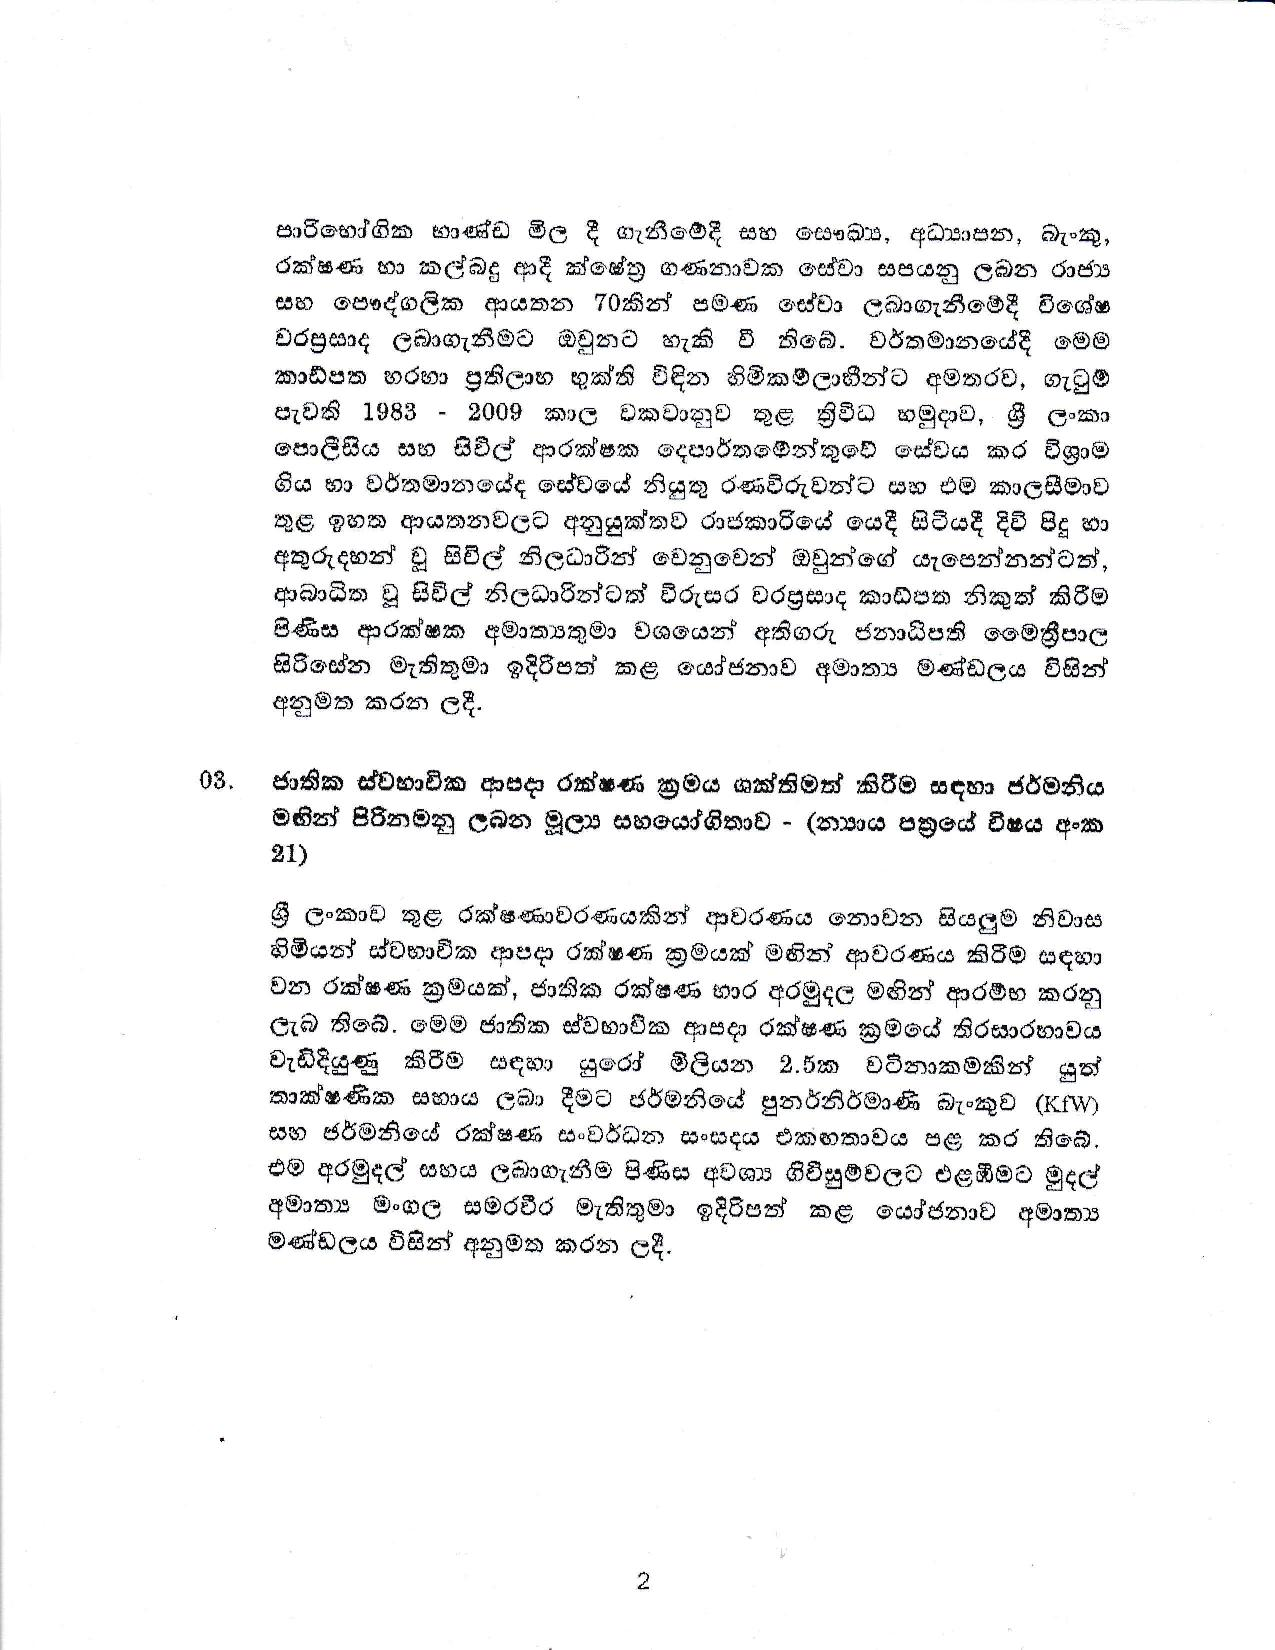 Cabinet Decision on 21.05.2019 page 002